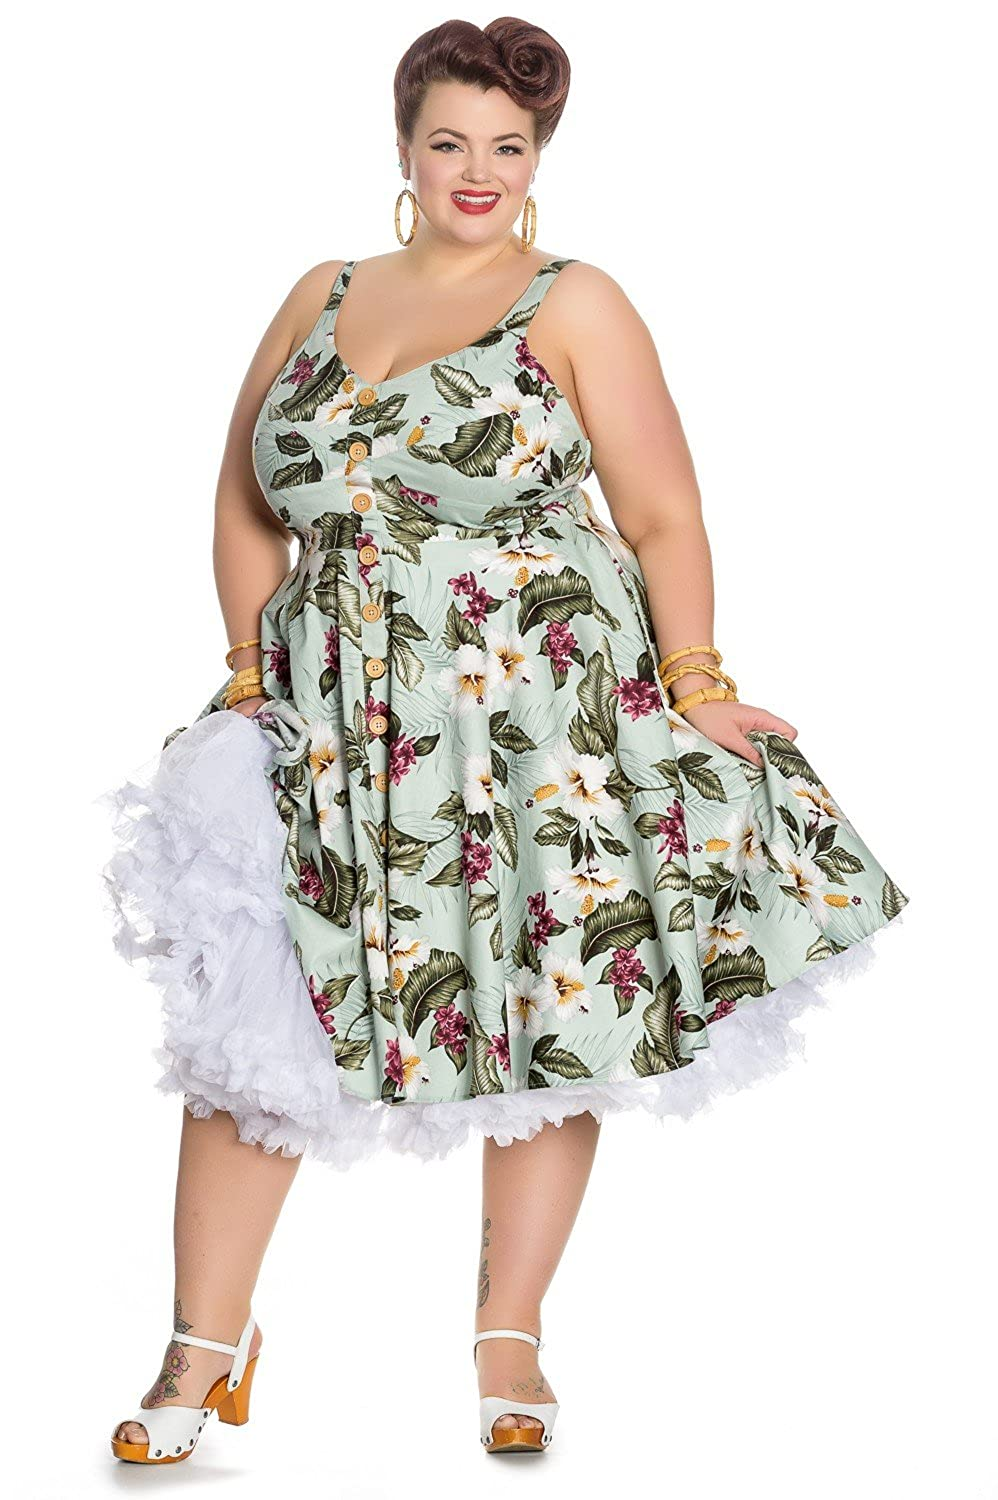 Vintage Tea Dresses, Floral Tea Dresses, Tea Length Dresses Hell Bunny Tahiti Tropical Floral 50s Vintage Rockabilly Flare Swing Party Dress $61.99 AT vintagedancer.com